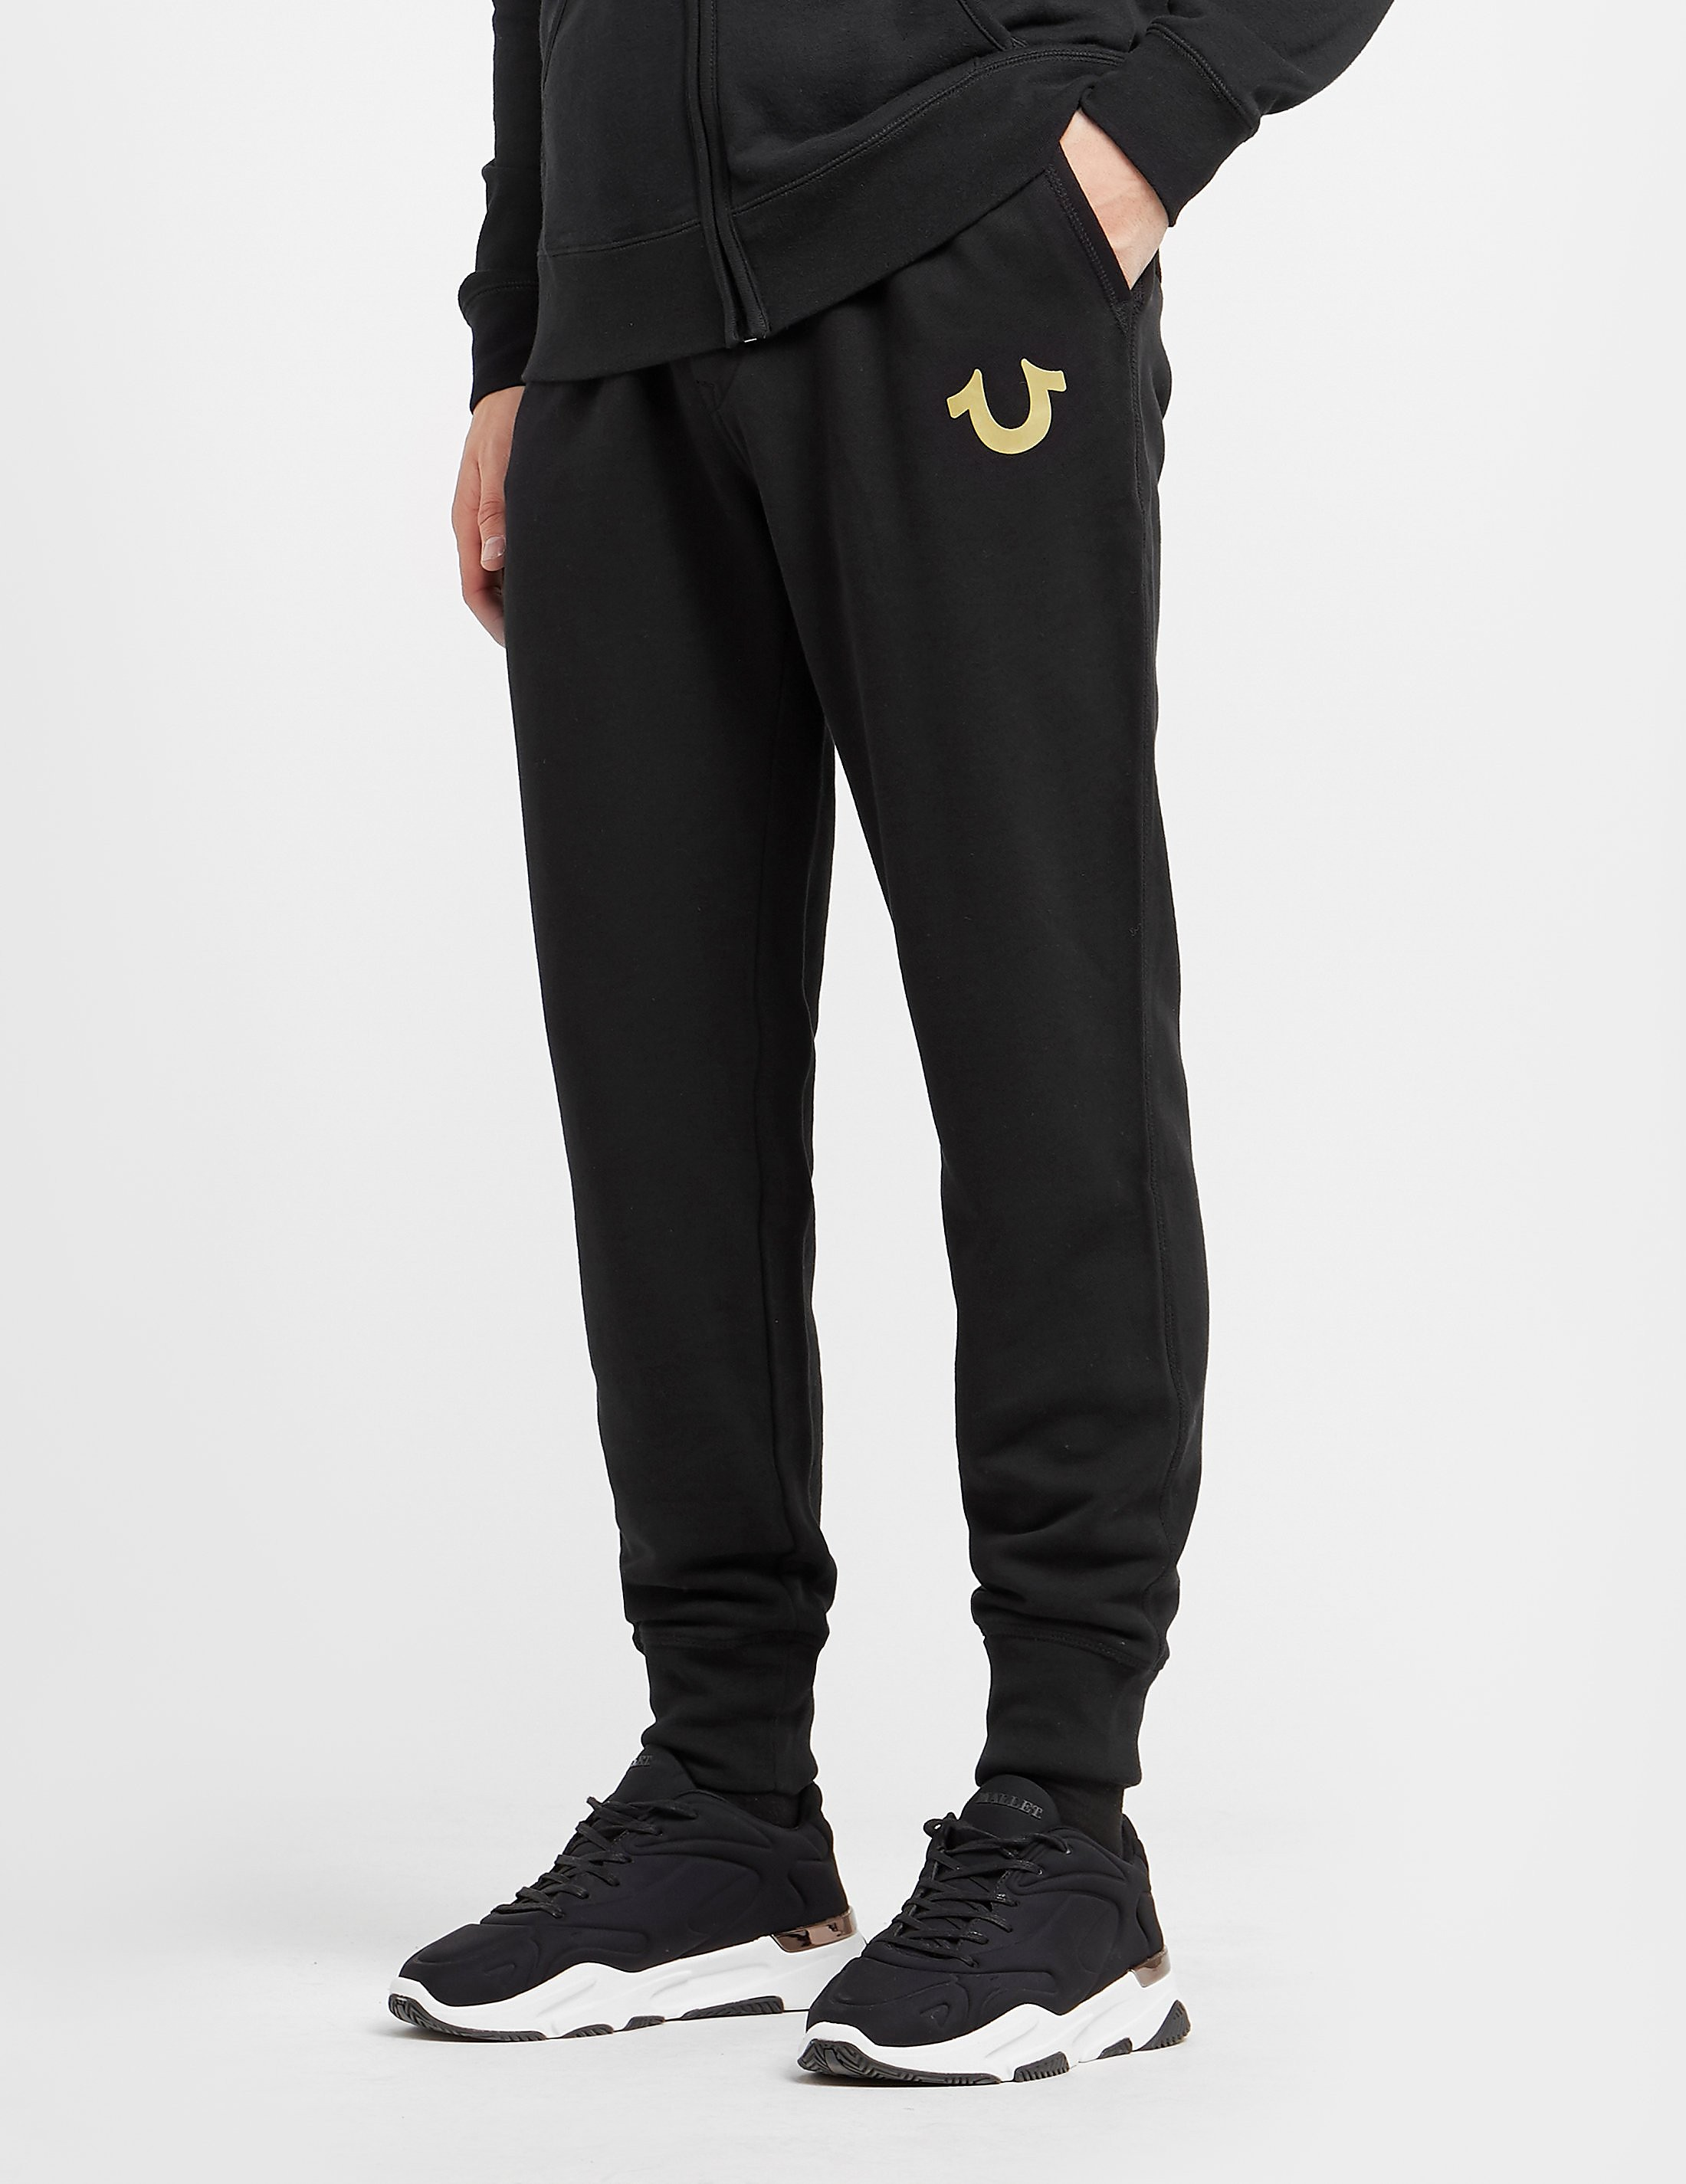 True Religion Gold Puff Cuffed Track Pants